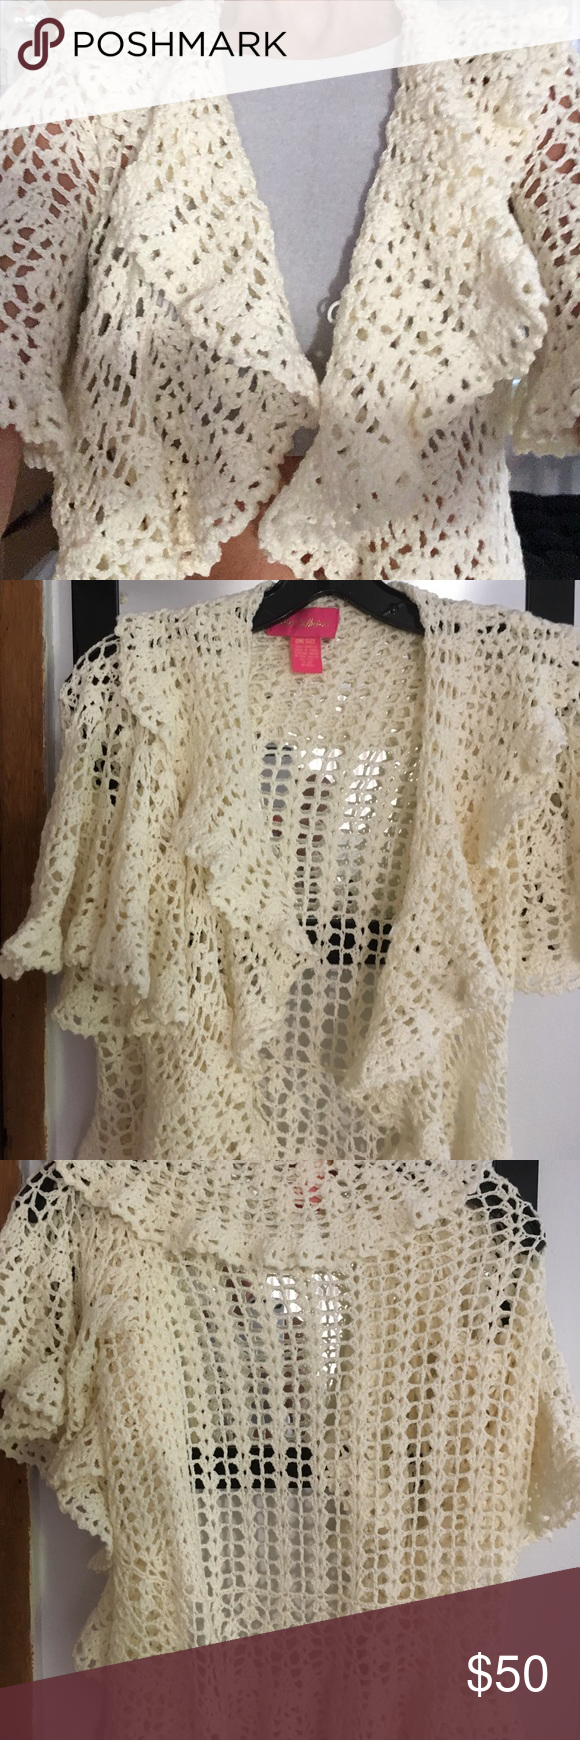 Crochet cardigan | Betsey johnson, Customer support and Short sleeves